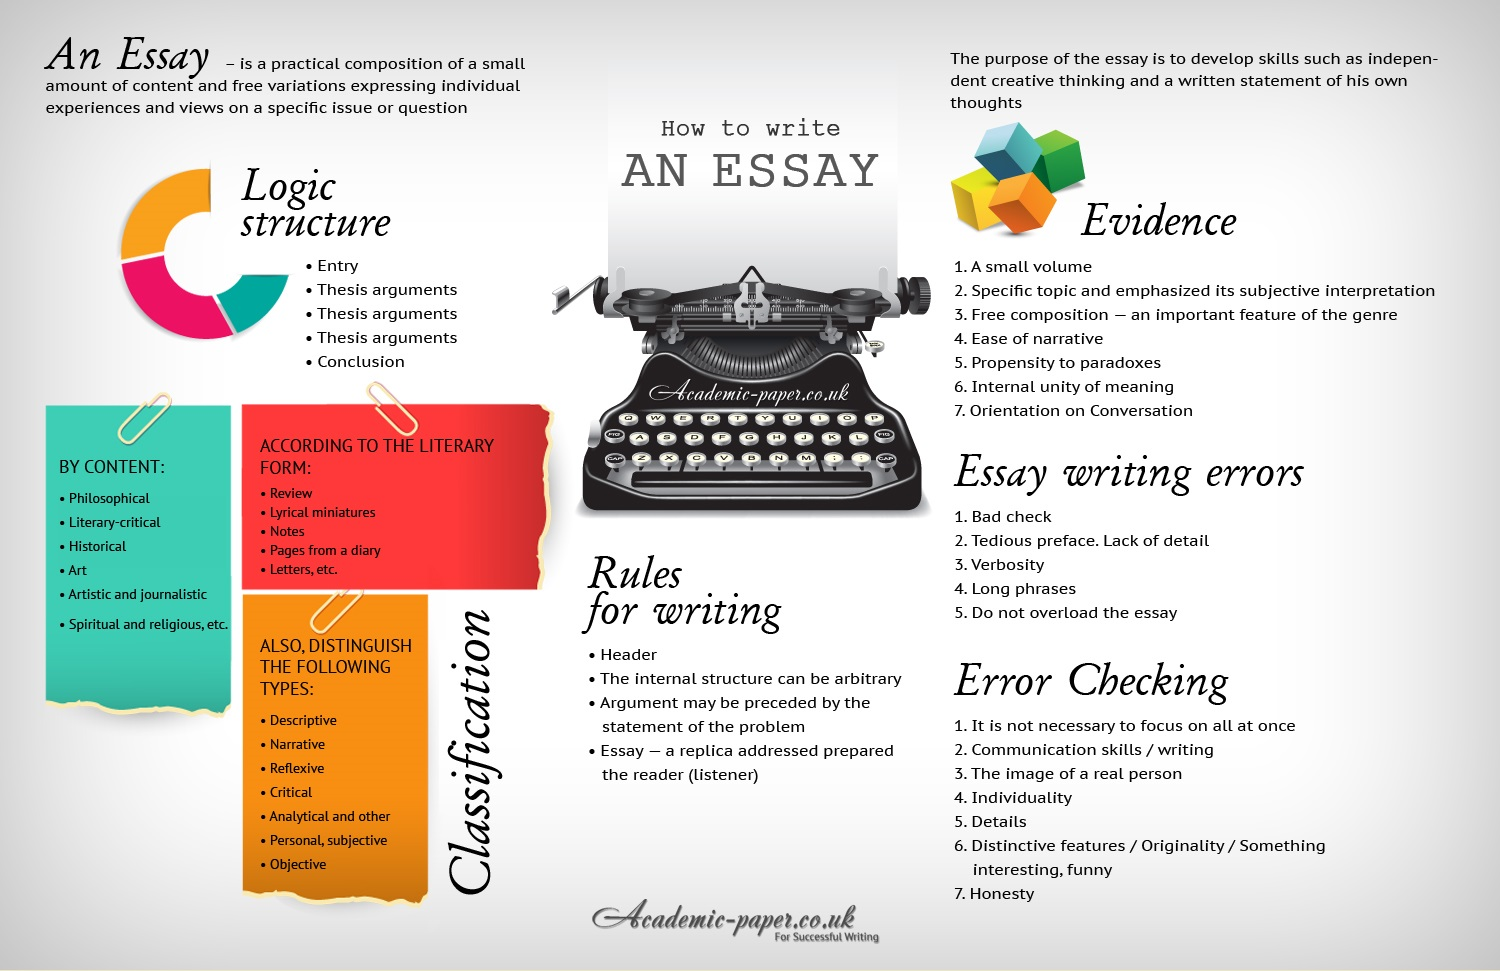 024 How To Write An Essay Example Awful Ab In 3 Hours Introduction Body And Conclusion 2 Full